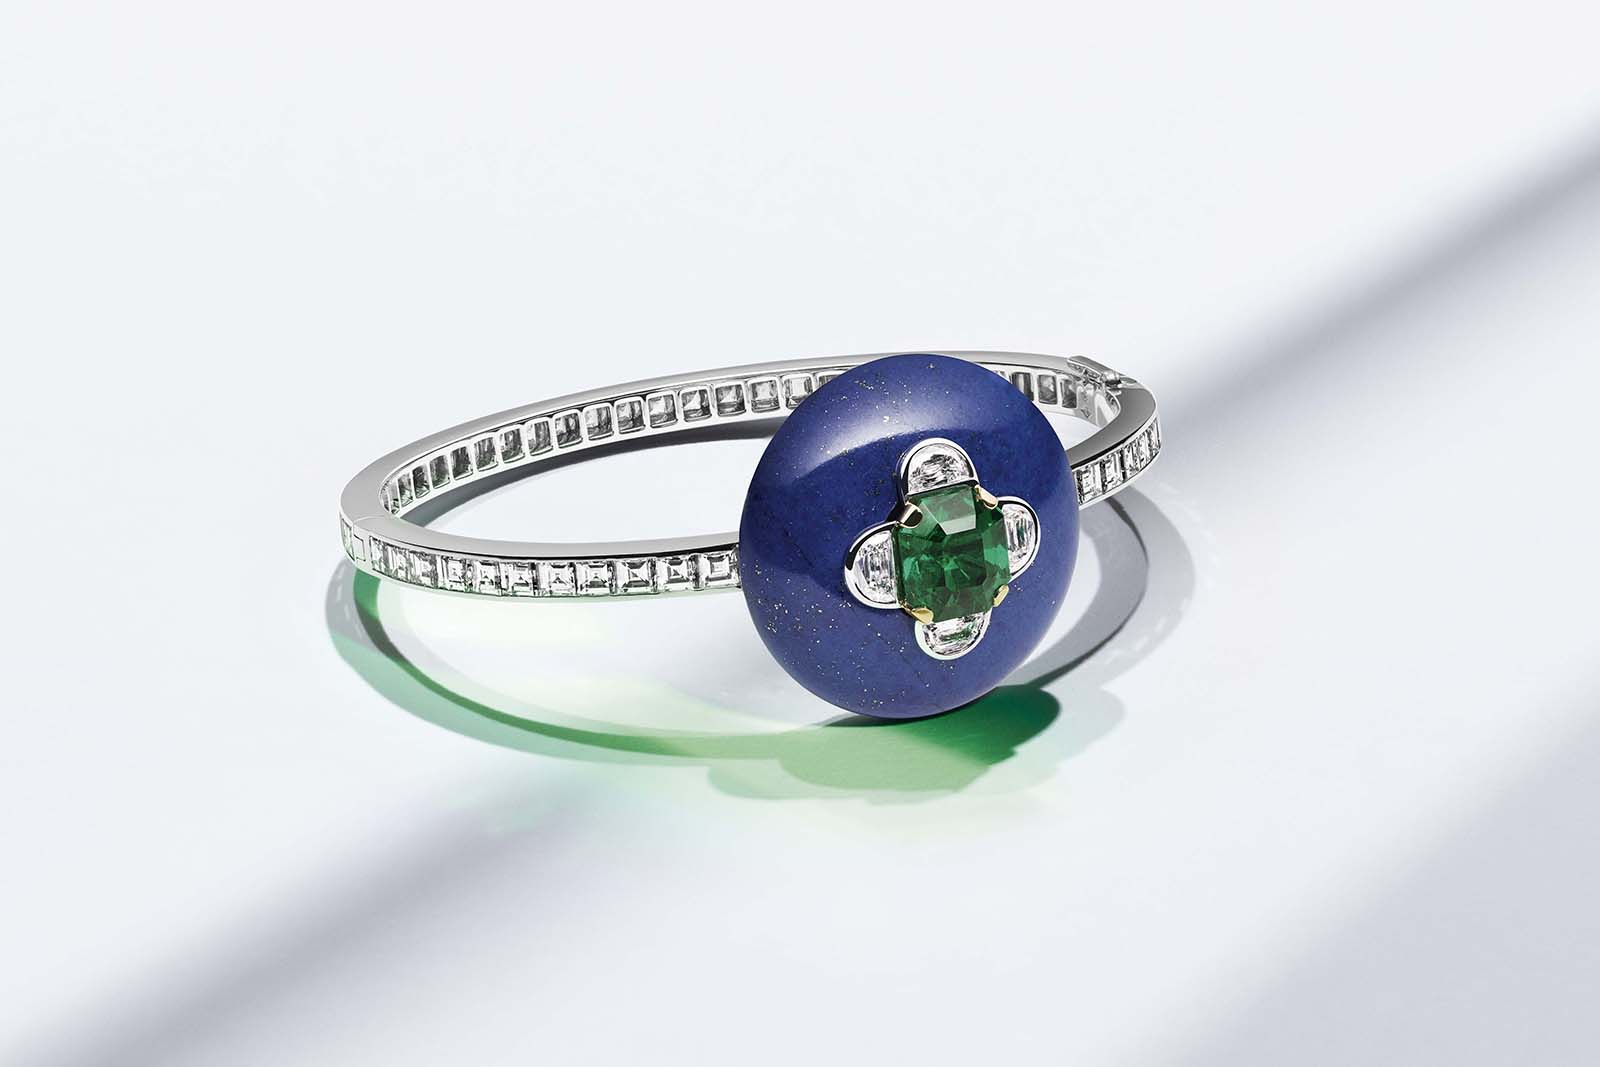 Louis Vuitton 'Riders of the Knights' collection bracelet with emerald, lapis lazuli and diamonds in white gold